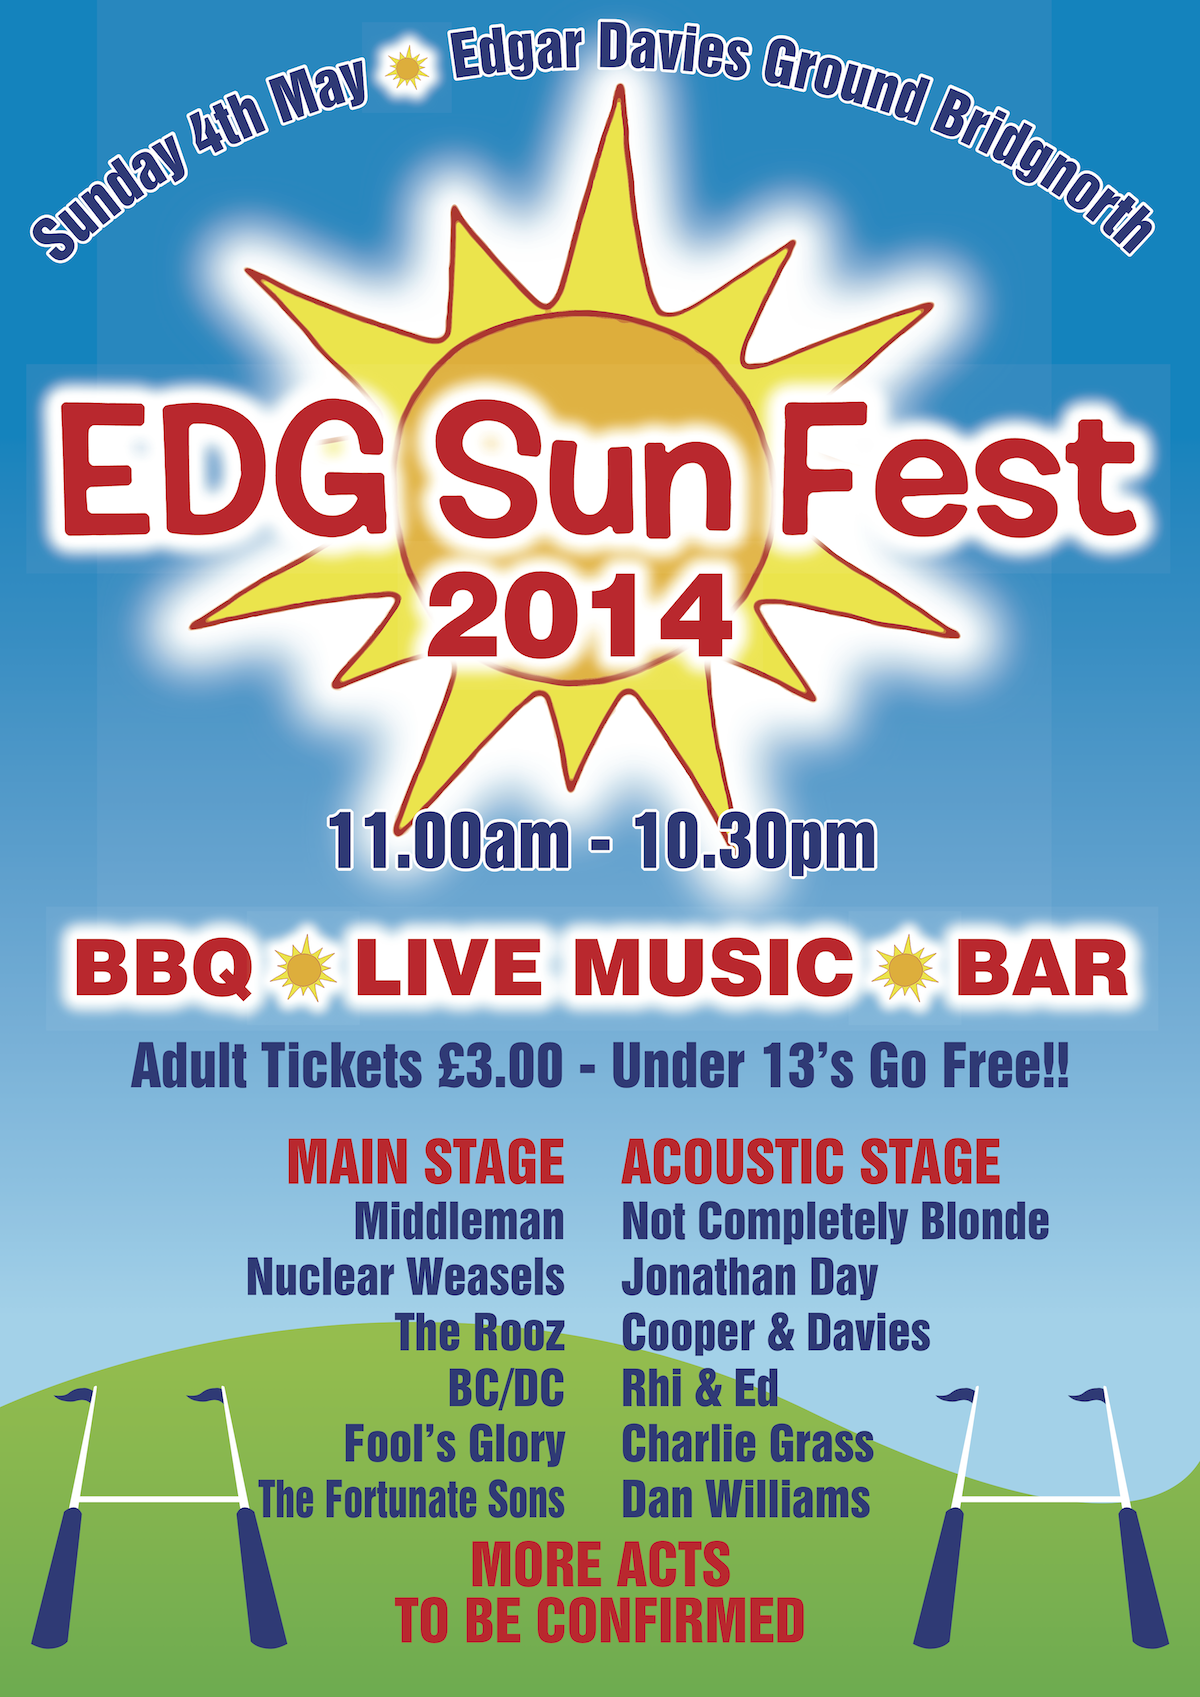 EDG Sun Fest May 4th 2014